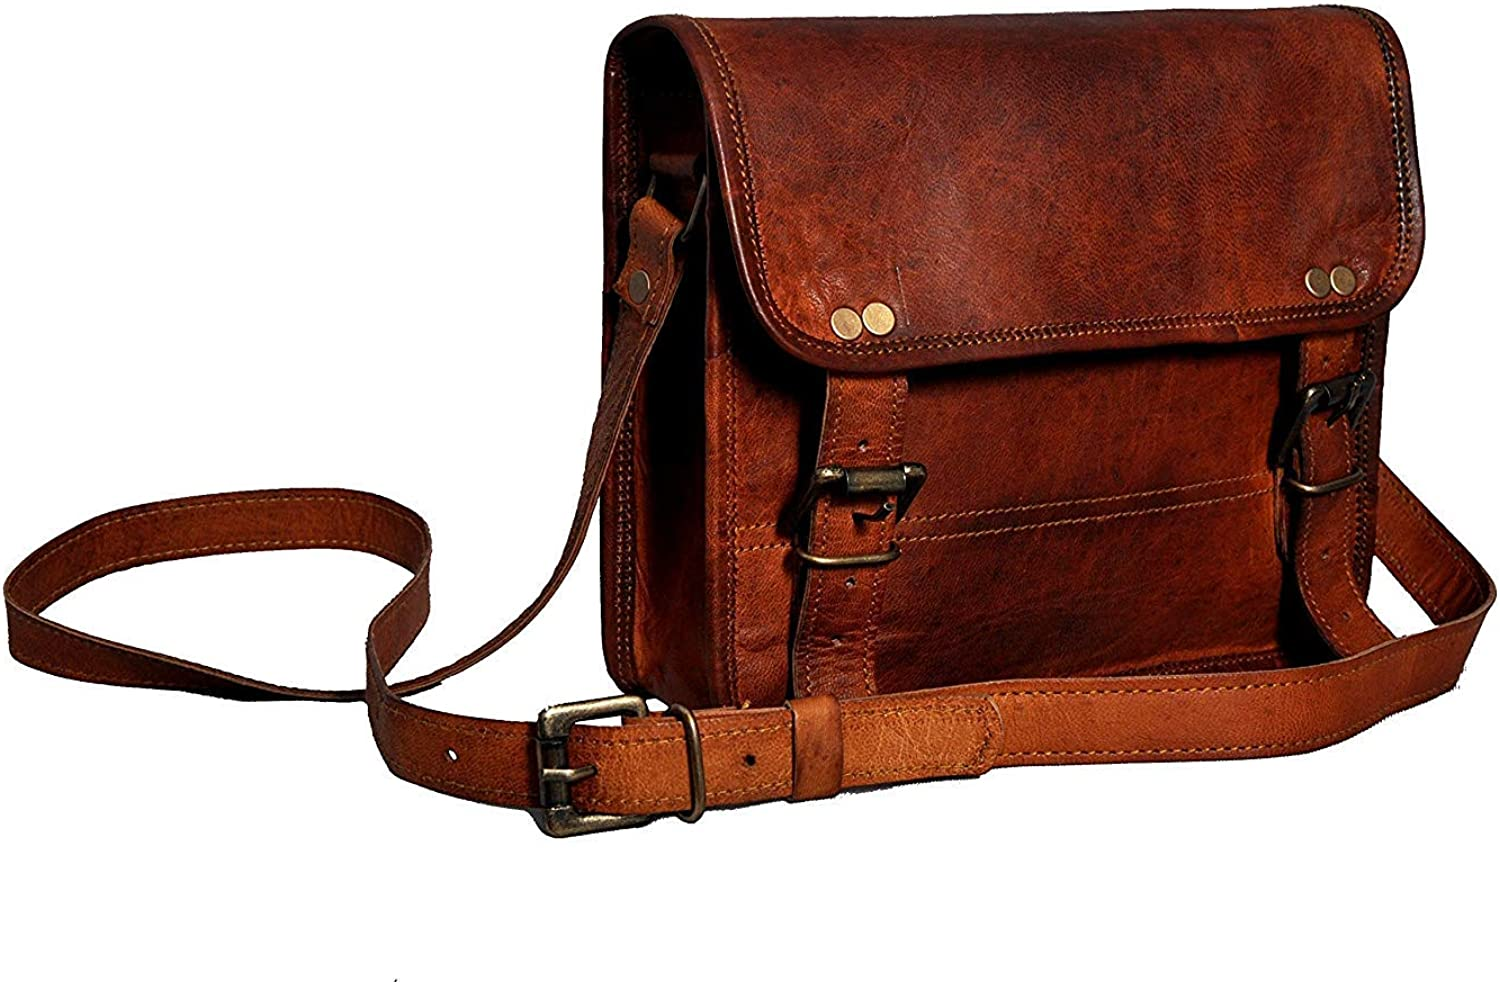 L_A 11 INCH Leather Messenger Ipad, Tablet Everyday Satchel Mini Laptop Bag for Men & Women Brown